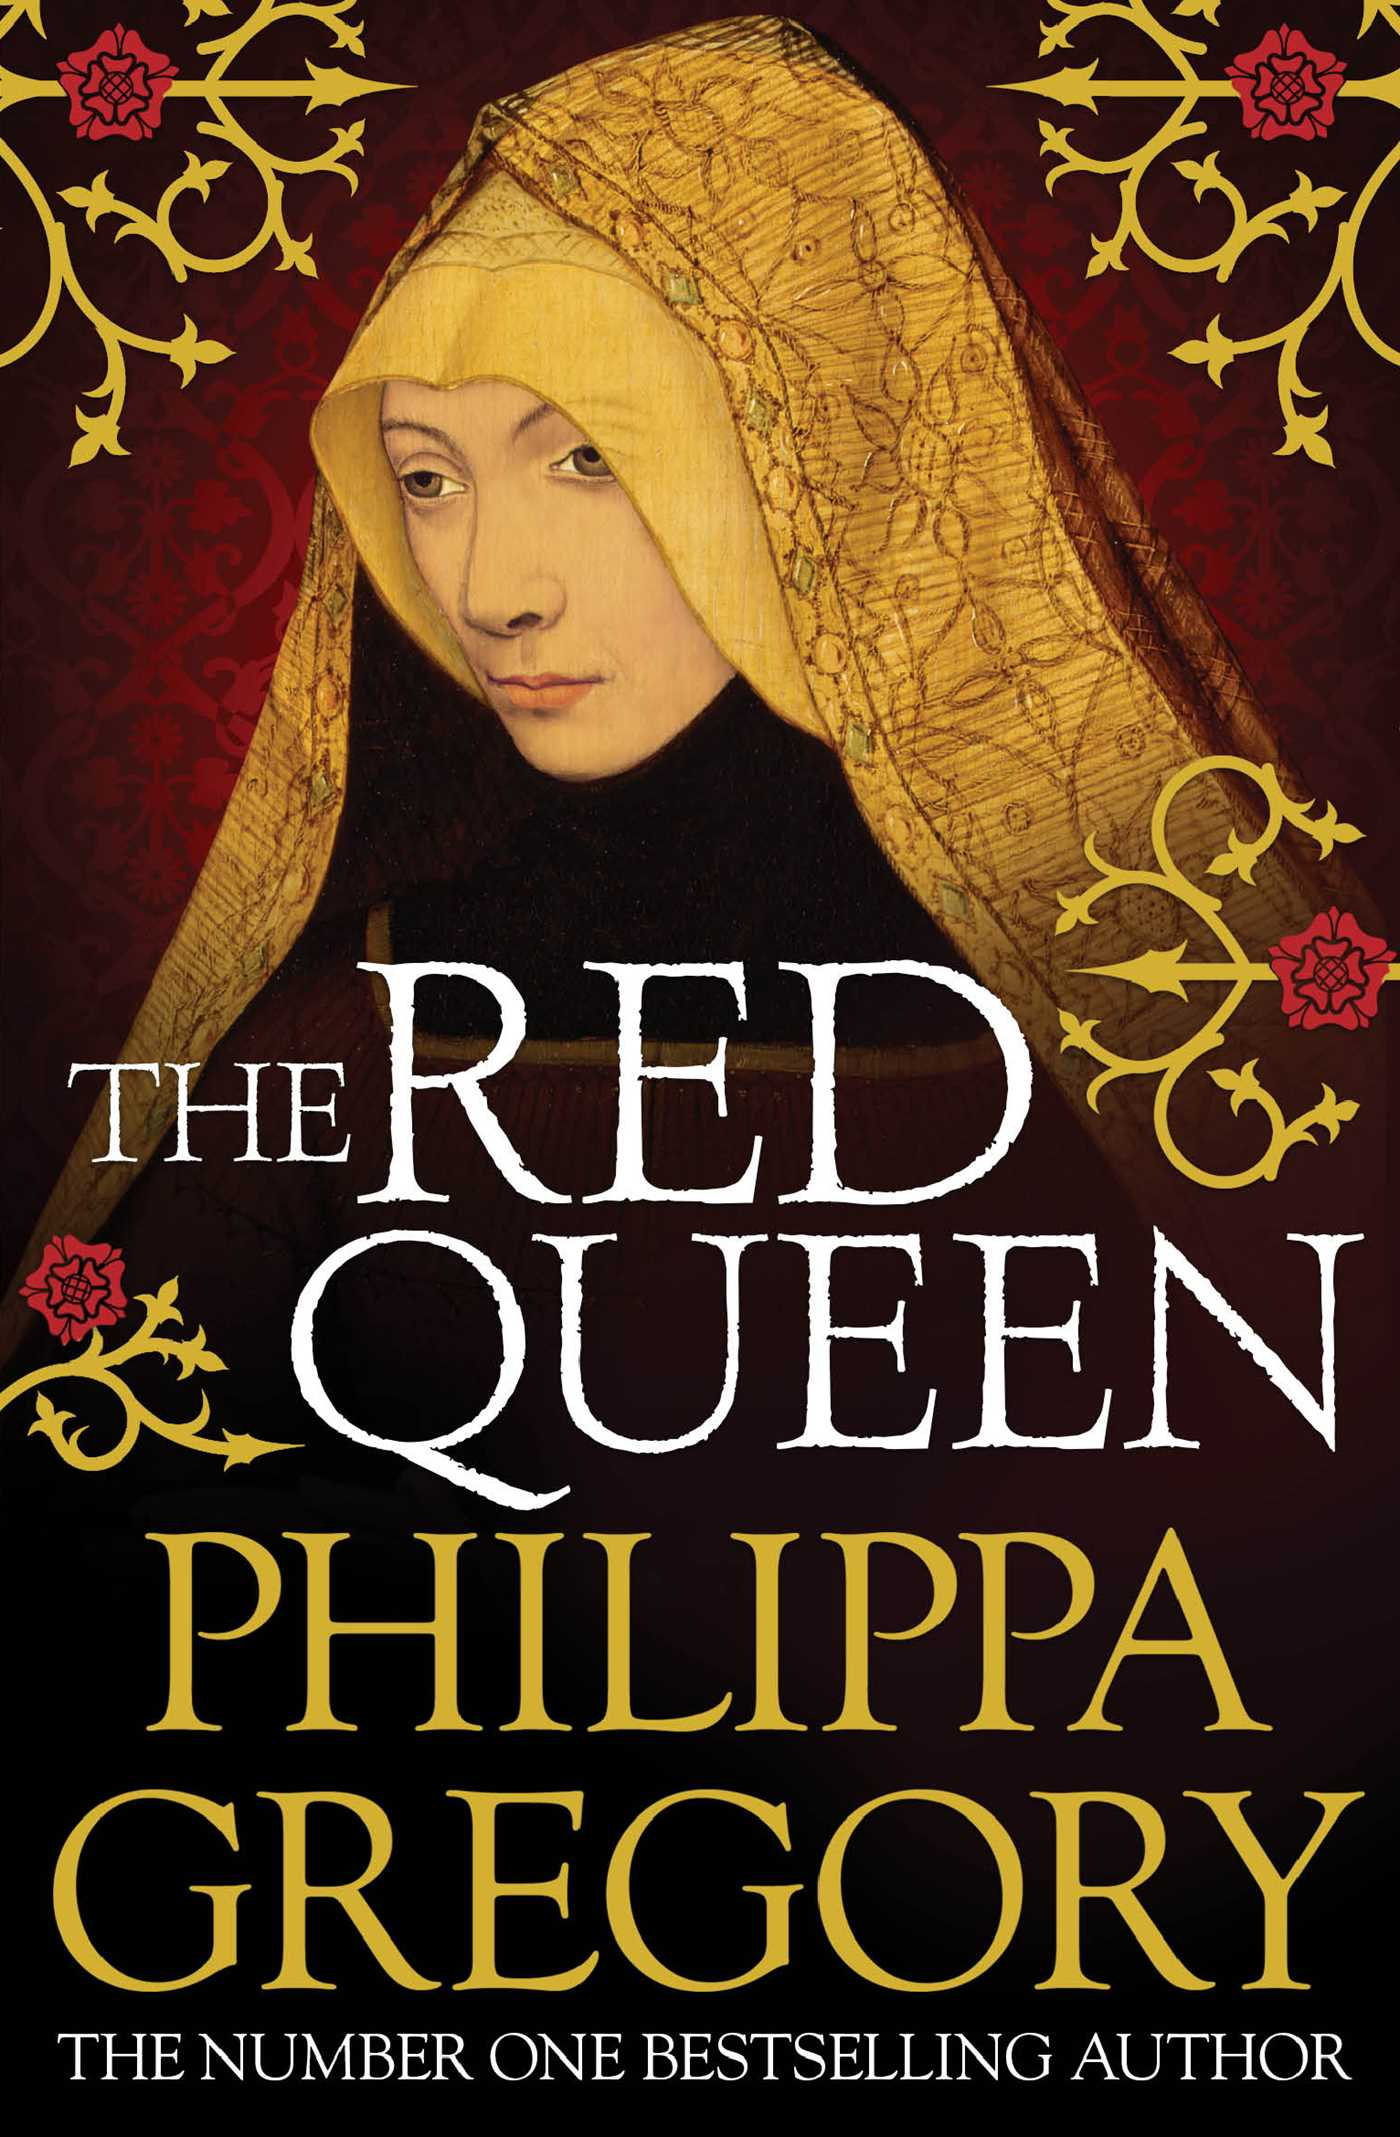 The red queen 9781847379788 hr